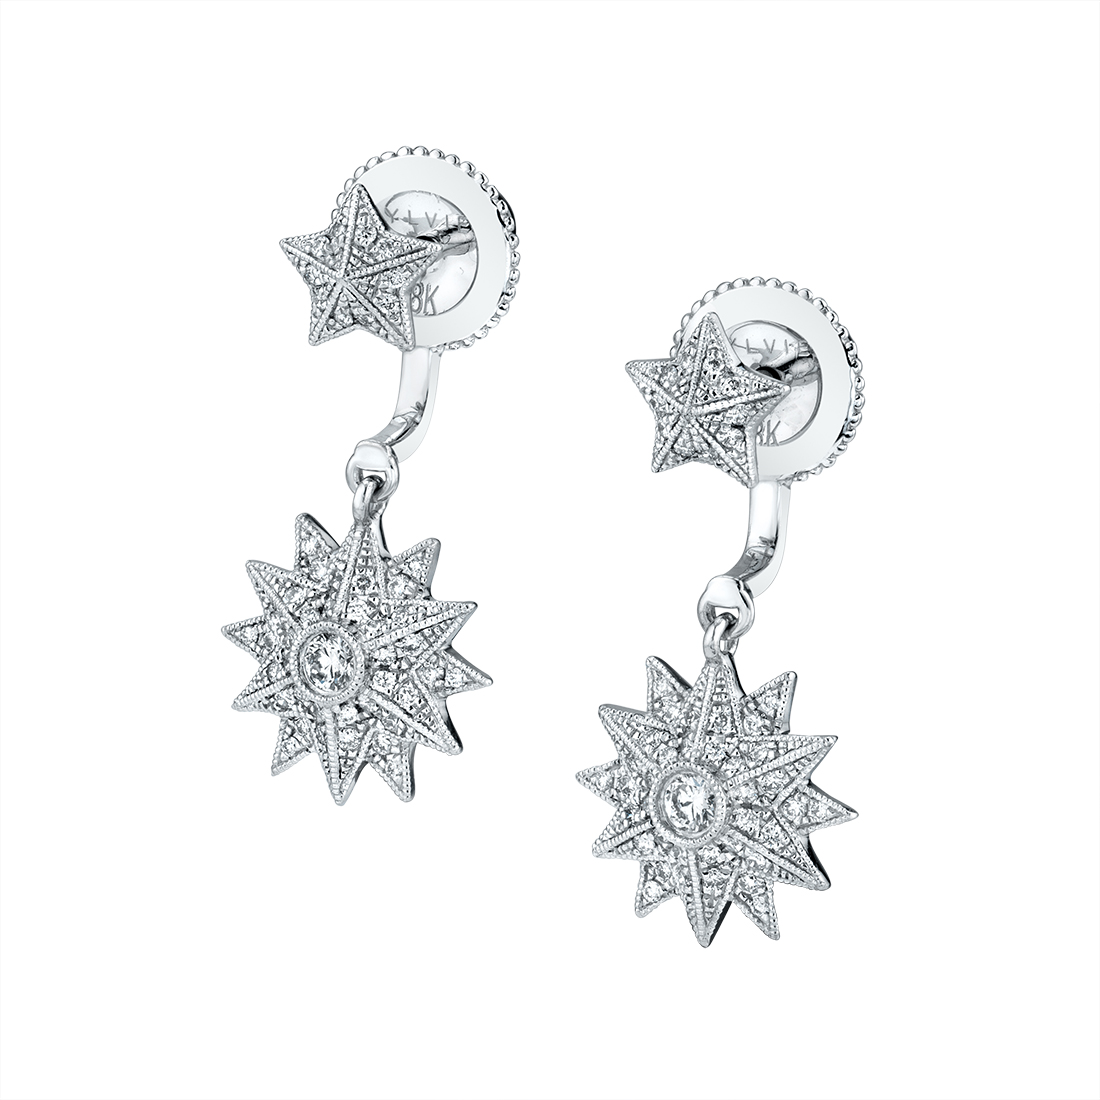 Star Shaped Peekaboo Earrings